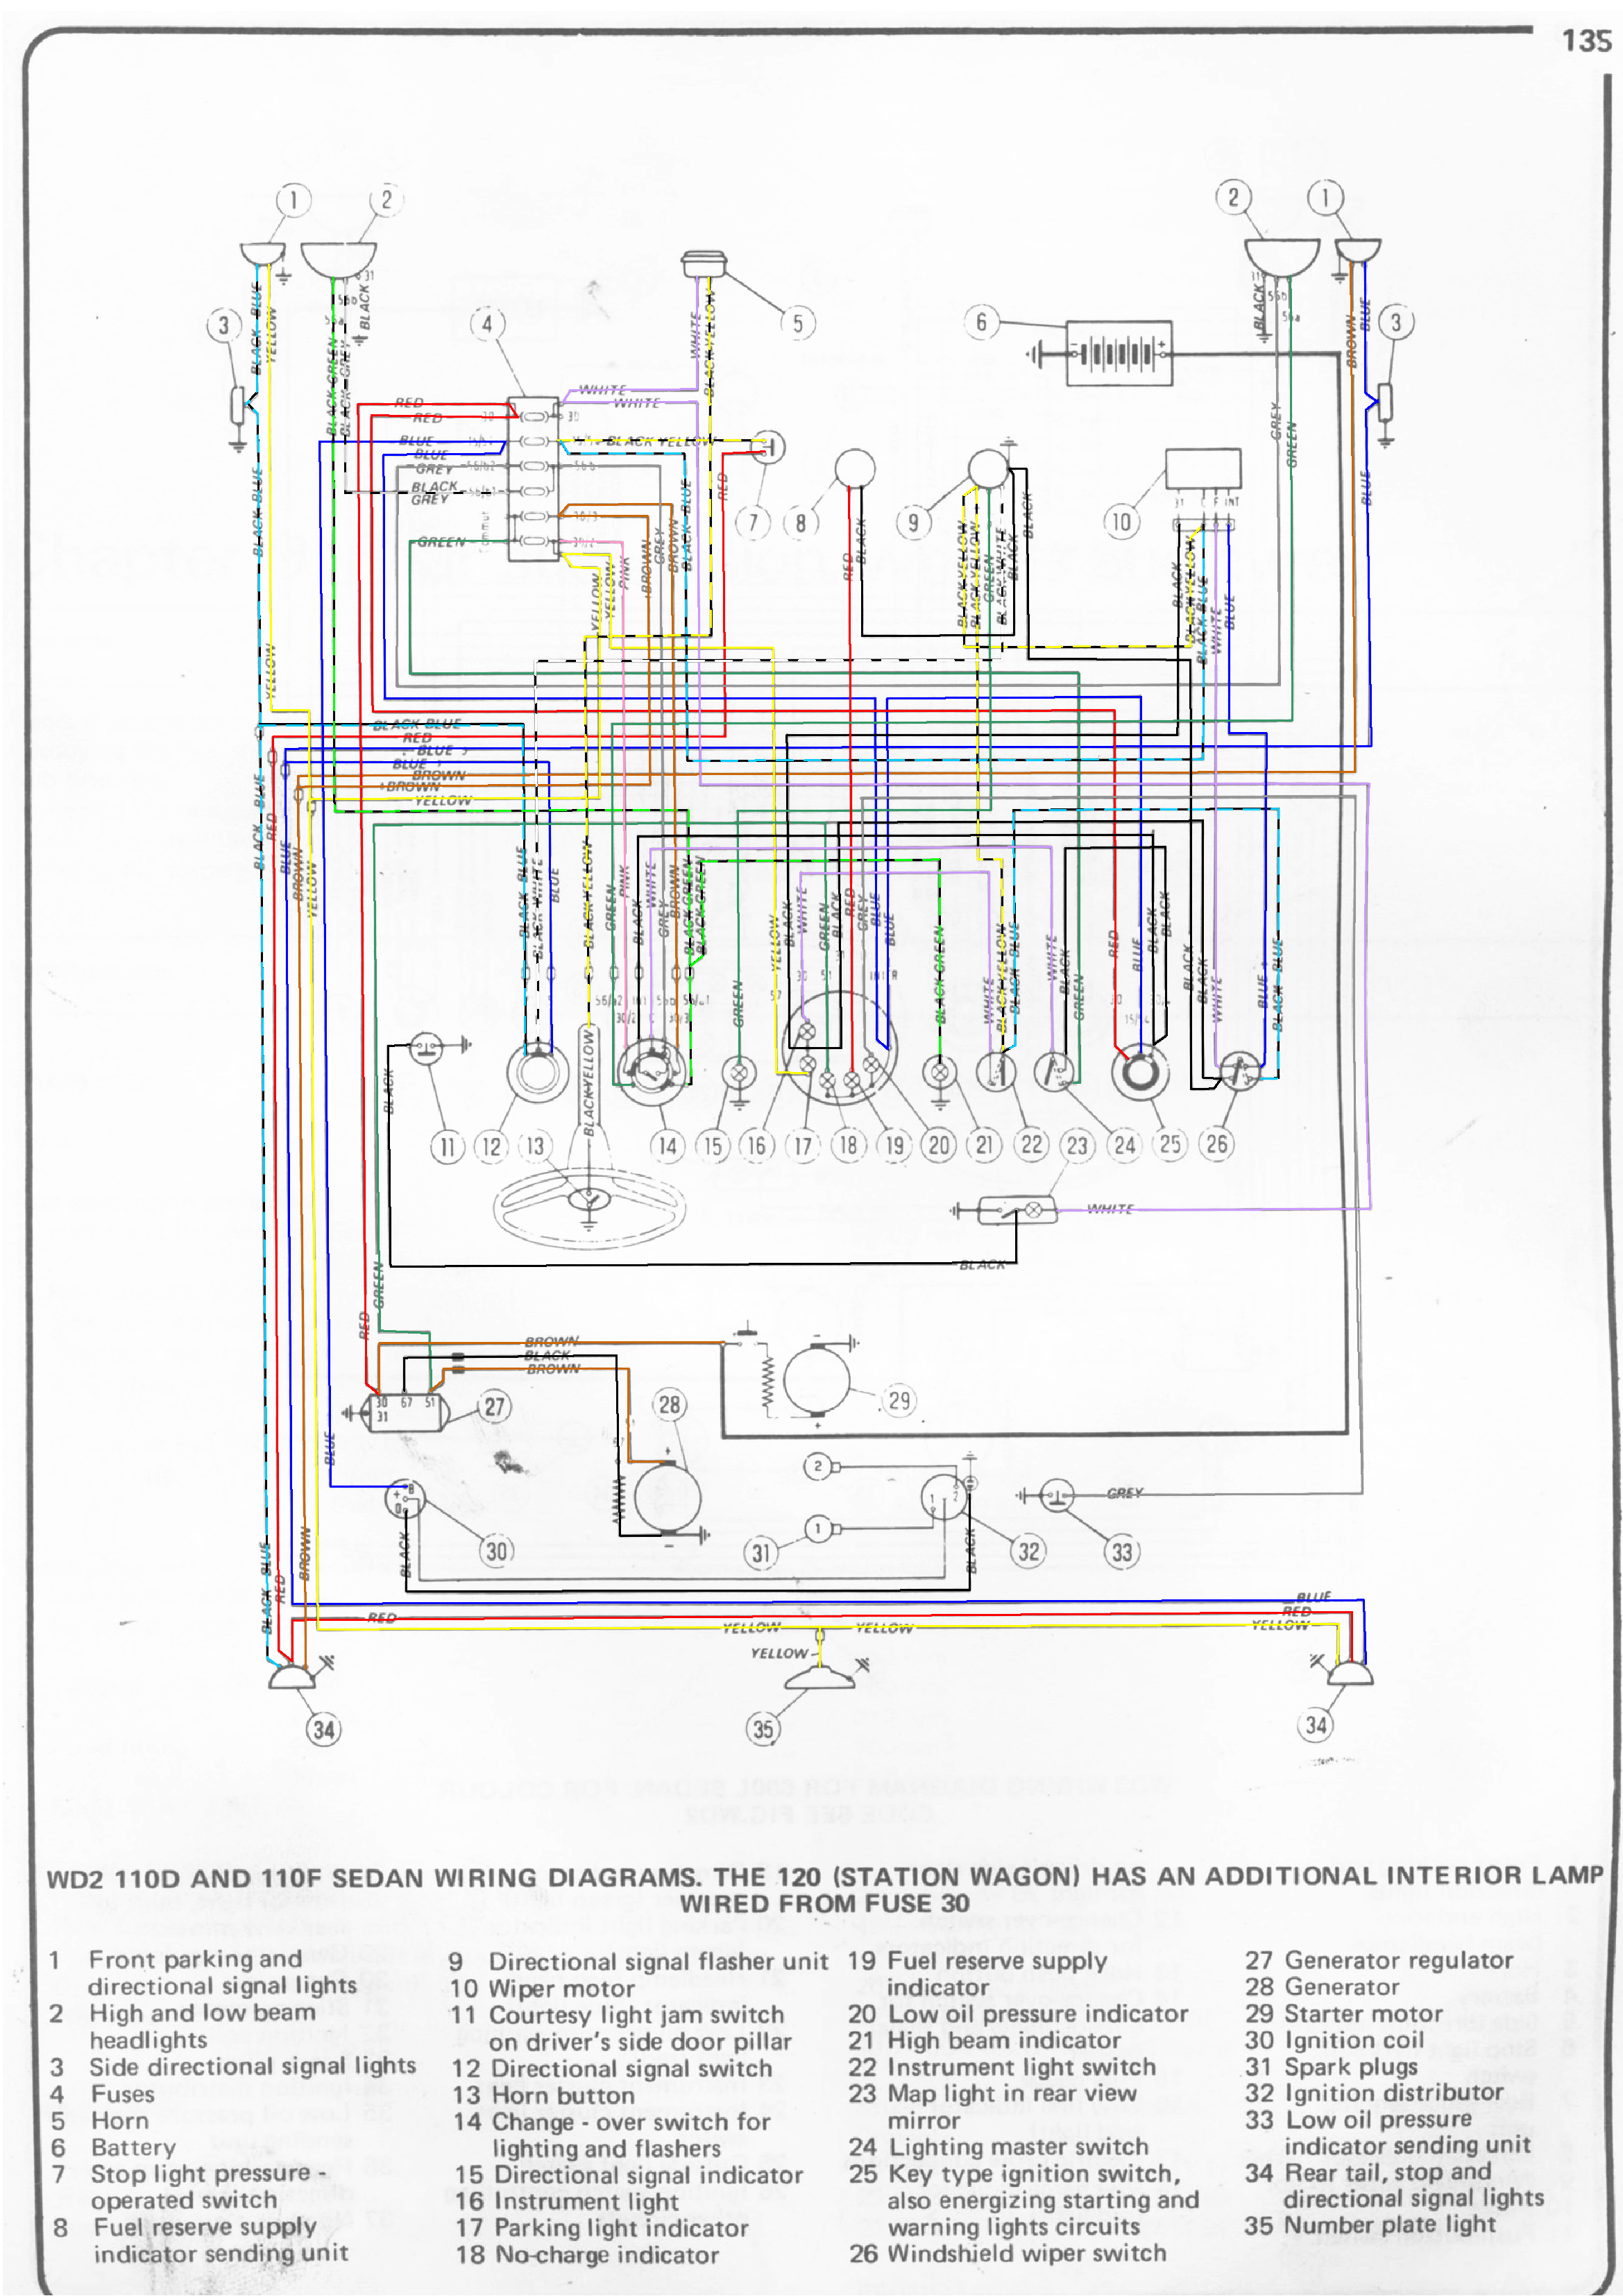 fiat punto towbar wiring diagram wiring diagram todaysfiat multipla towbar wiring diagram wiring diagrams electrical wiring [ 2339 x 3309 Pixel ]